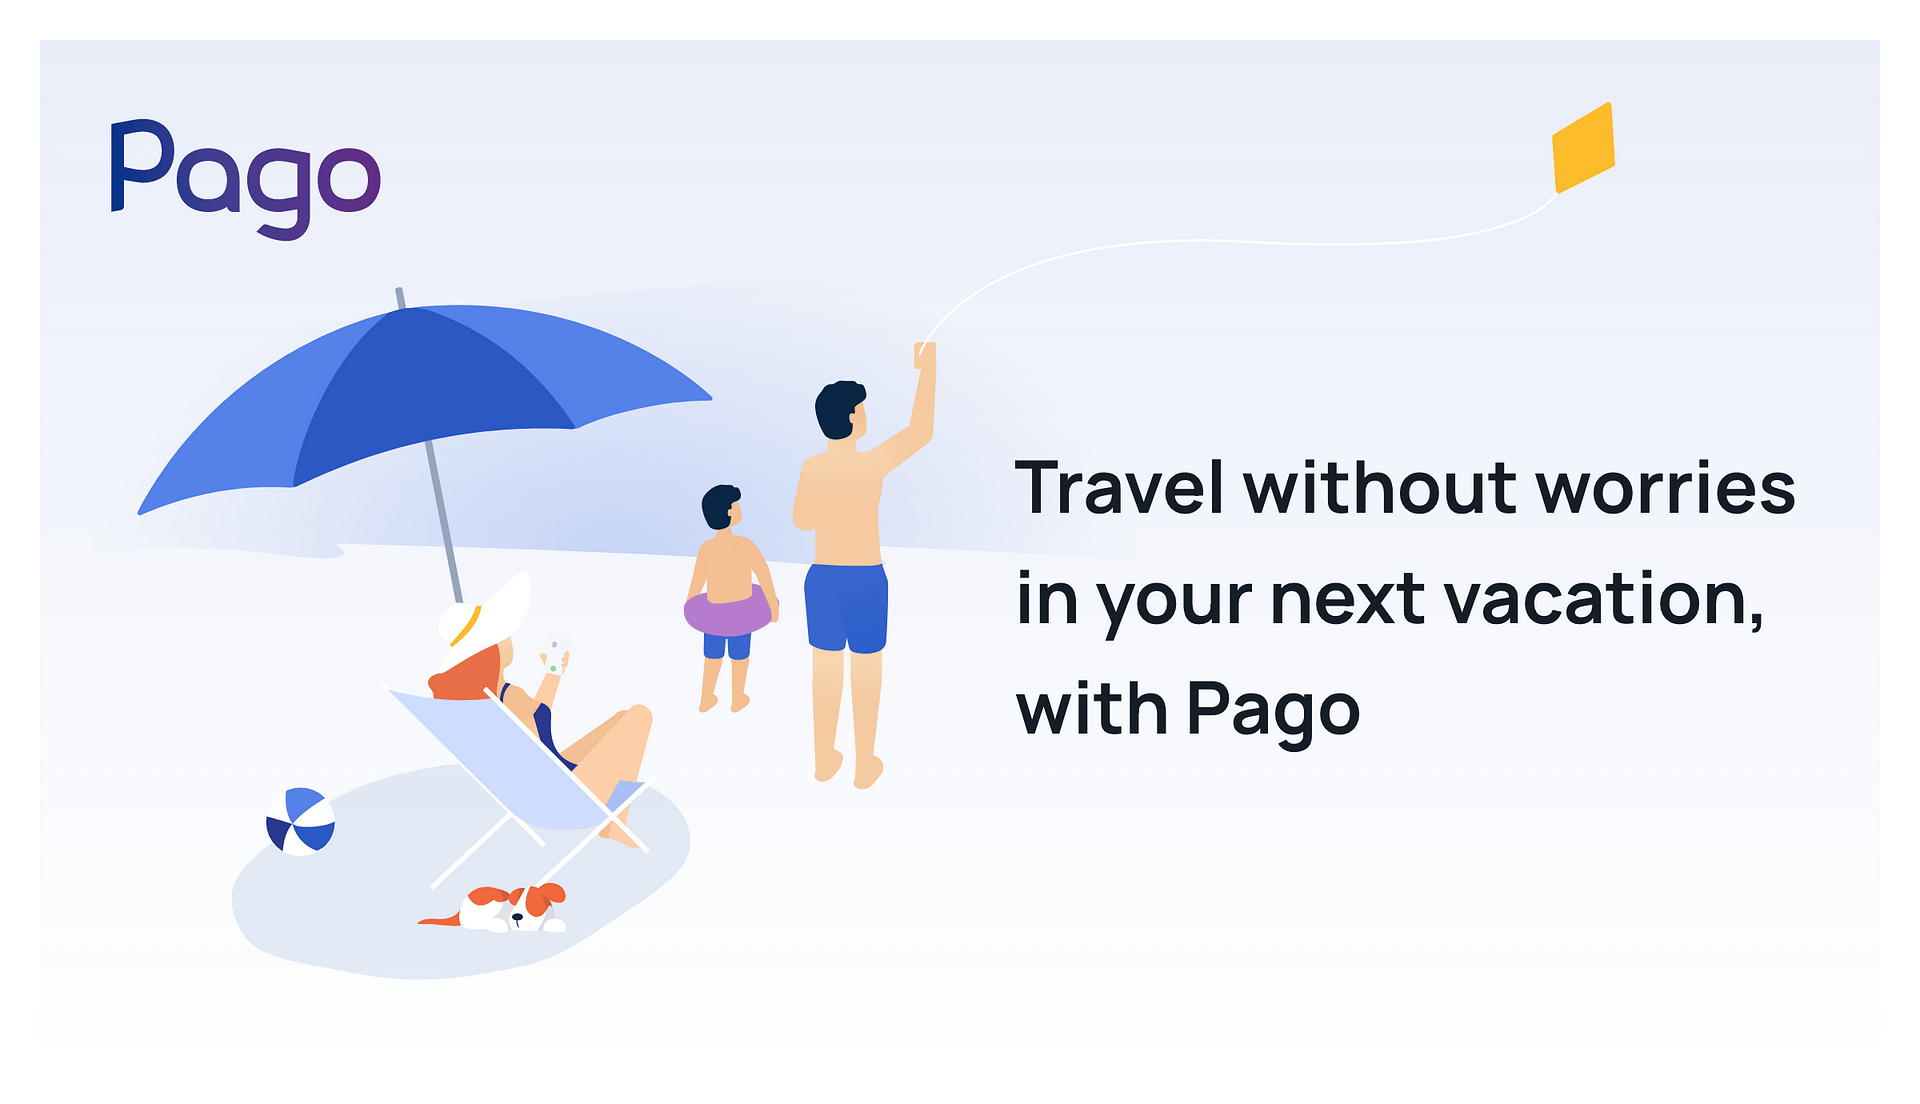 All about the travel insurance from Pago